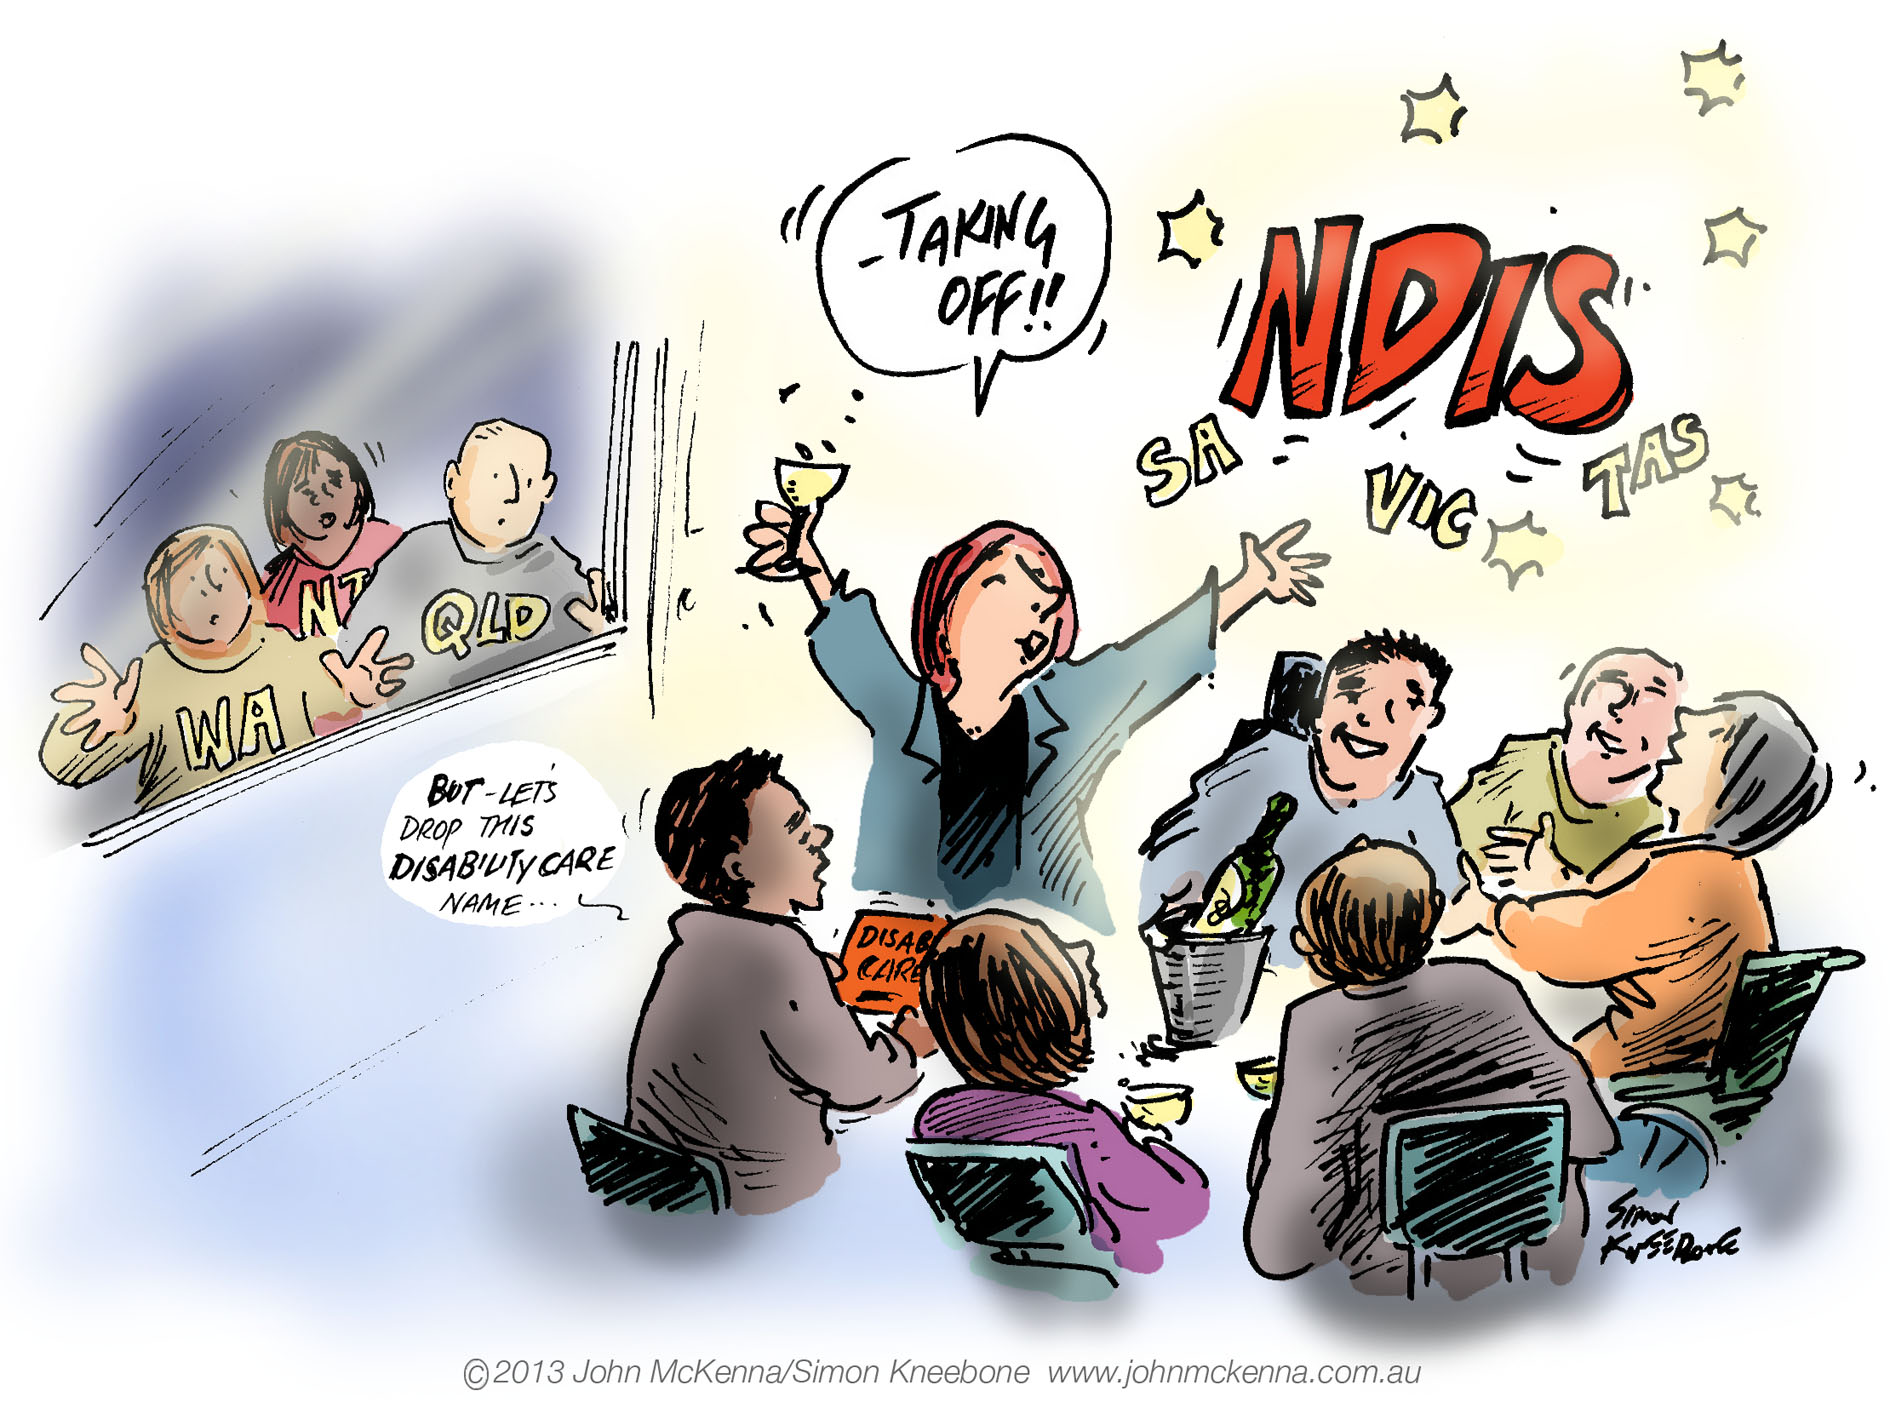 NDIS taking off pic